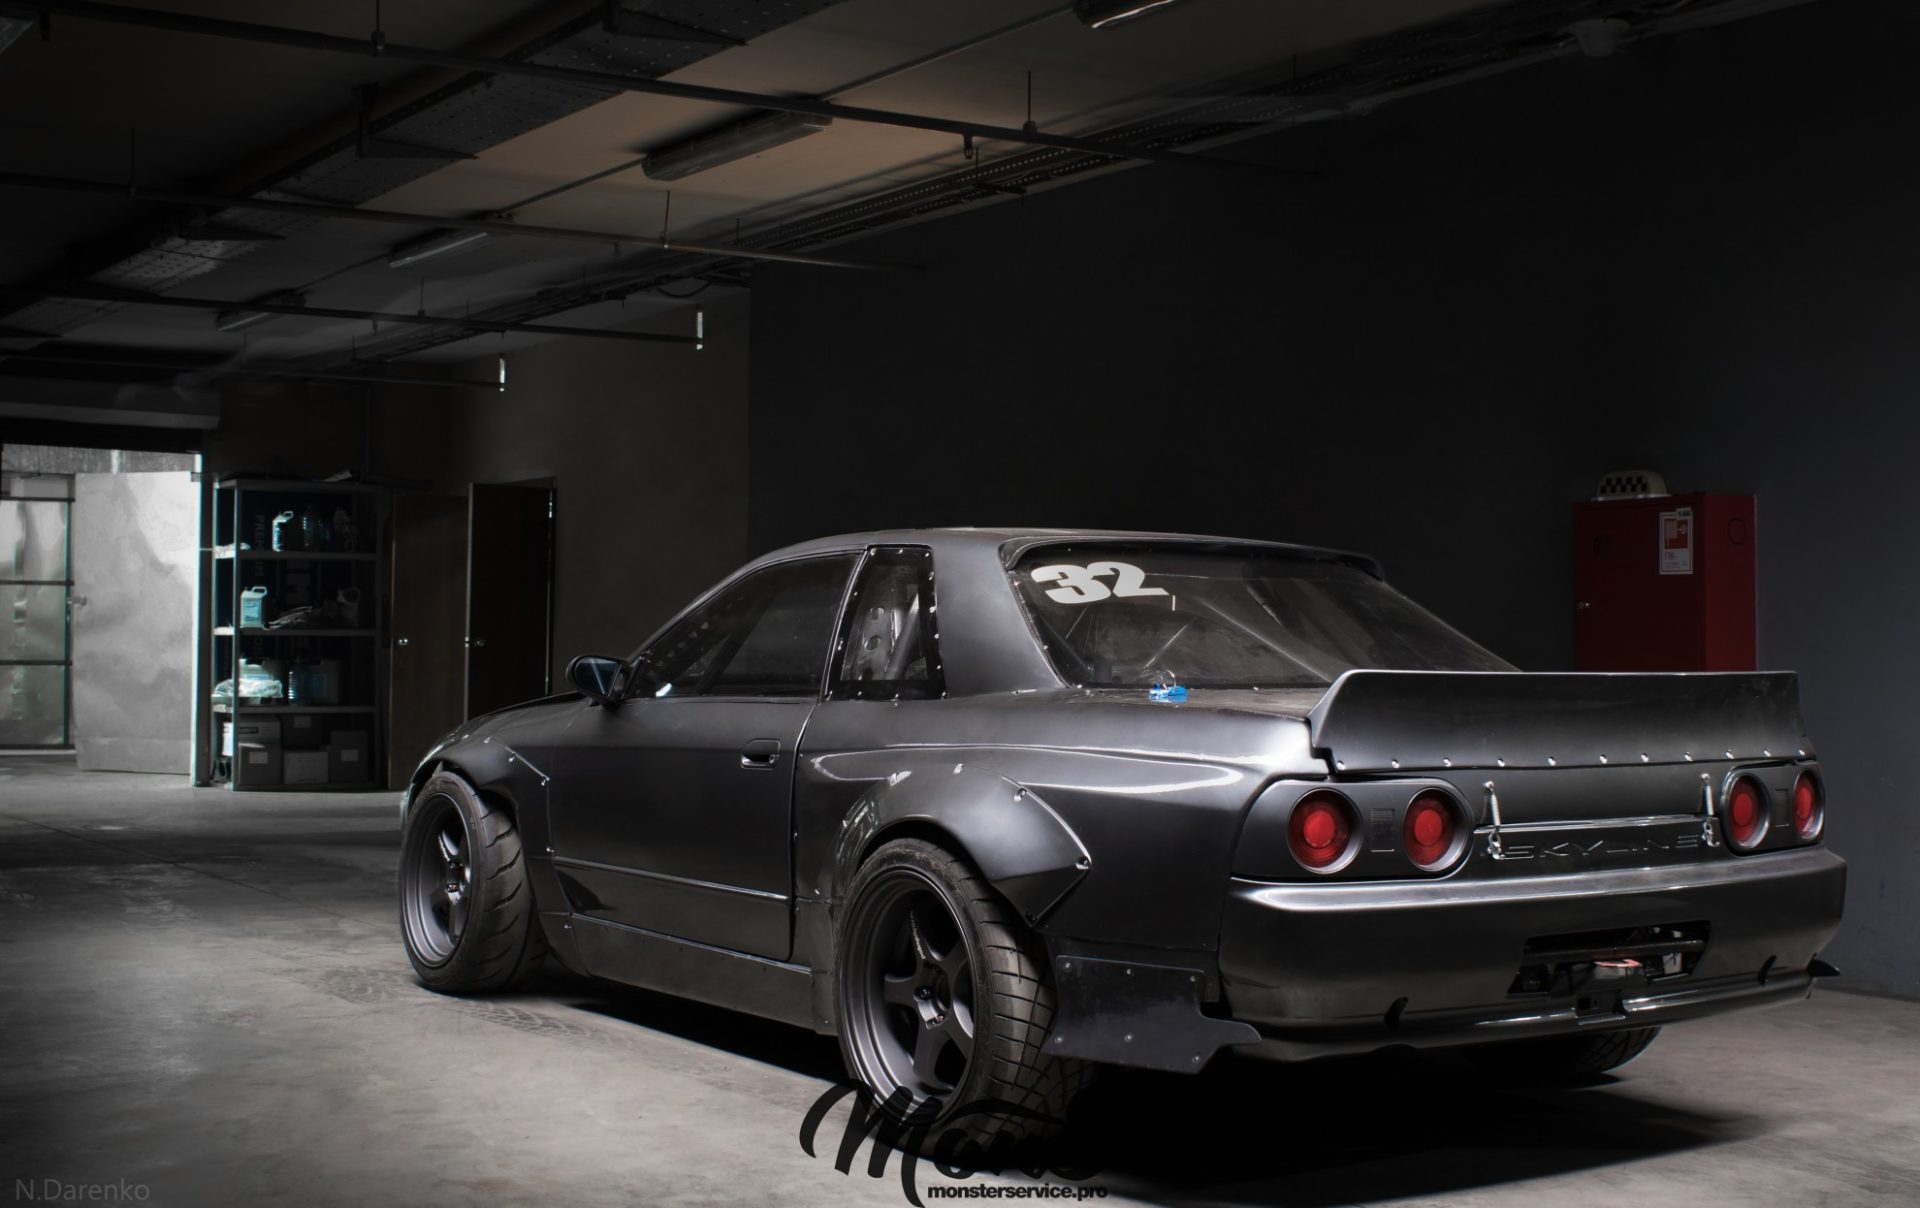 L Skyline R in addition Hqdefault as well Maxresdefault together with Maxresdefault further R Gtr With Nismo Fine Spec Engine Auction Front. on 70 nissan skyline gtr